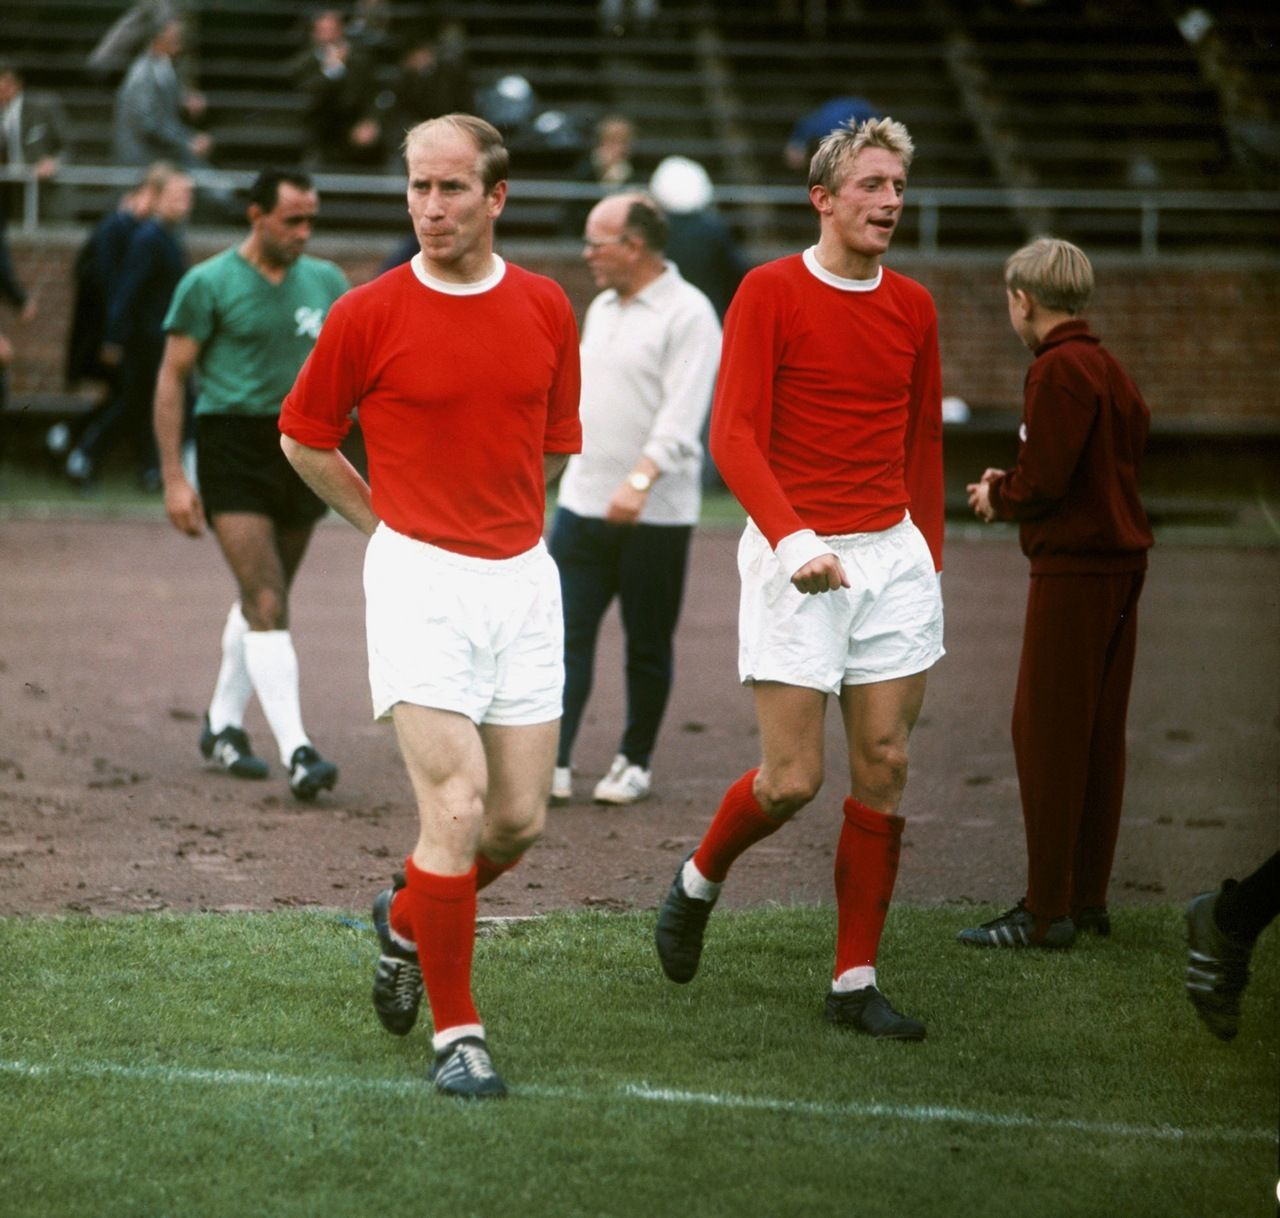 Bobby Charlton and Denis Law mid 1960s